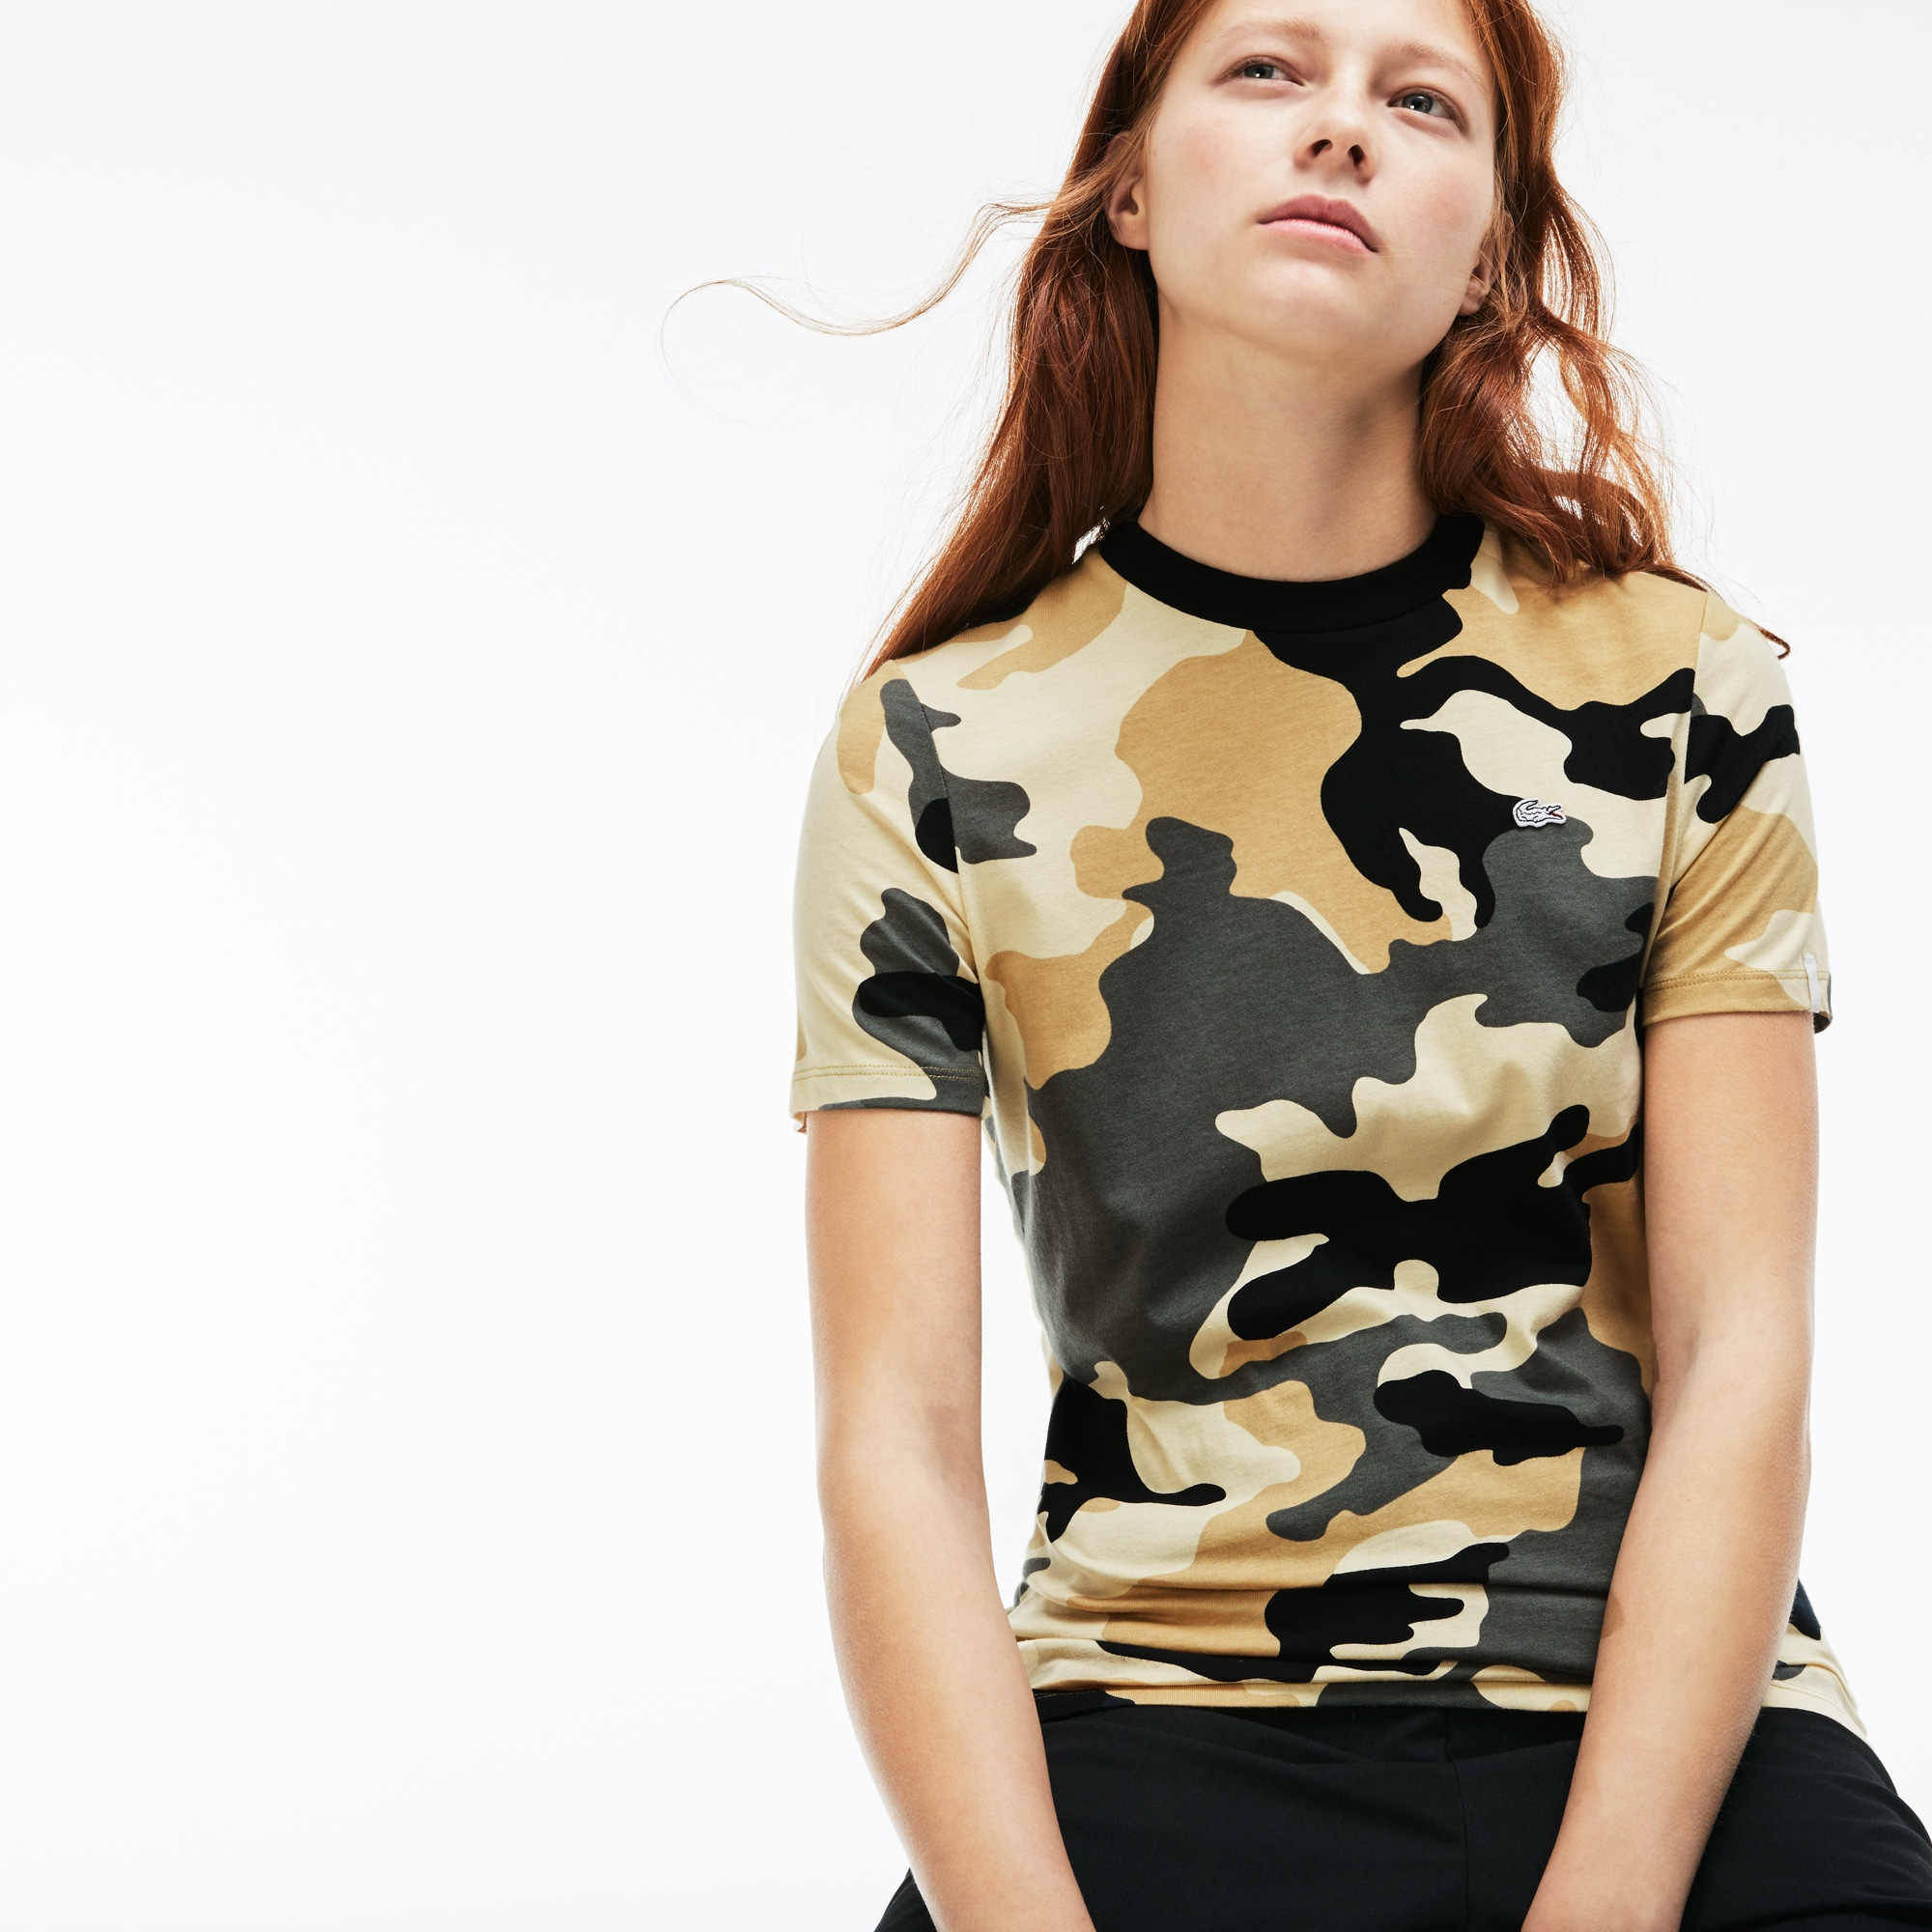 Women's LIVE Crew Neck Camouflage Print Jersey T-shirt